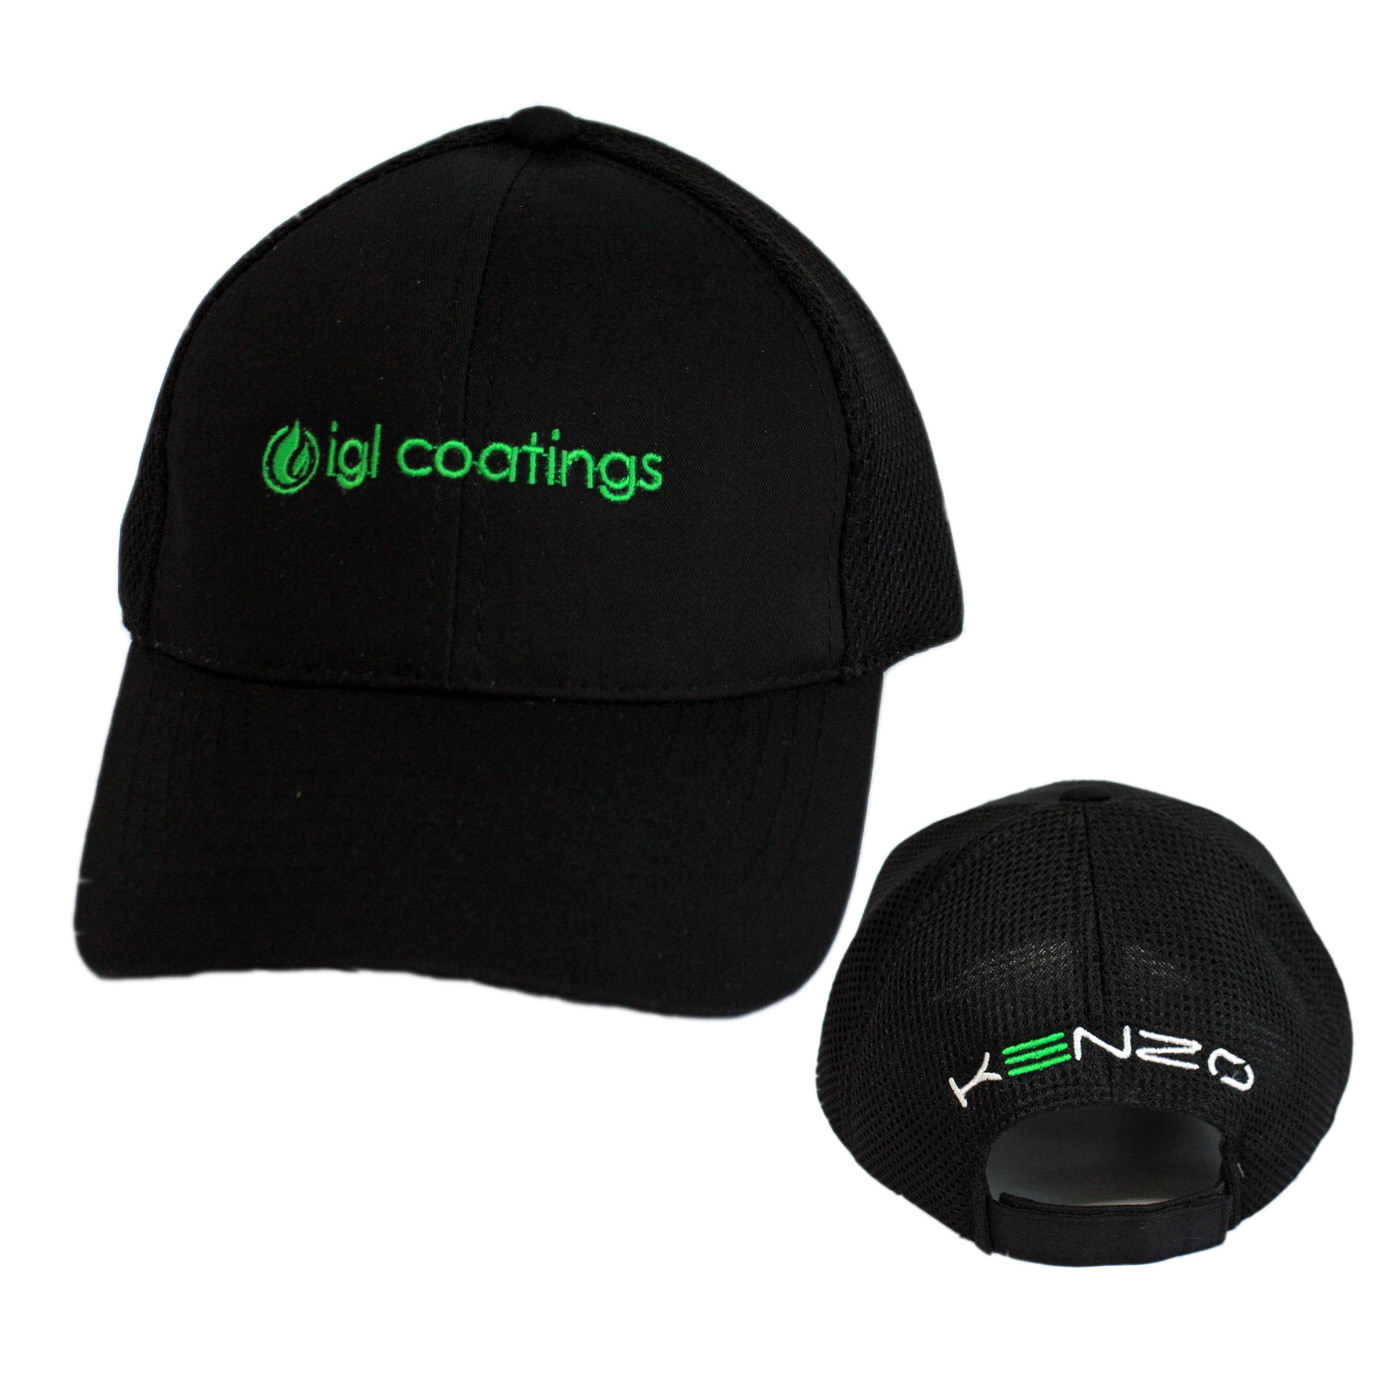 Contour Peak Ball Cap